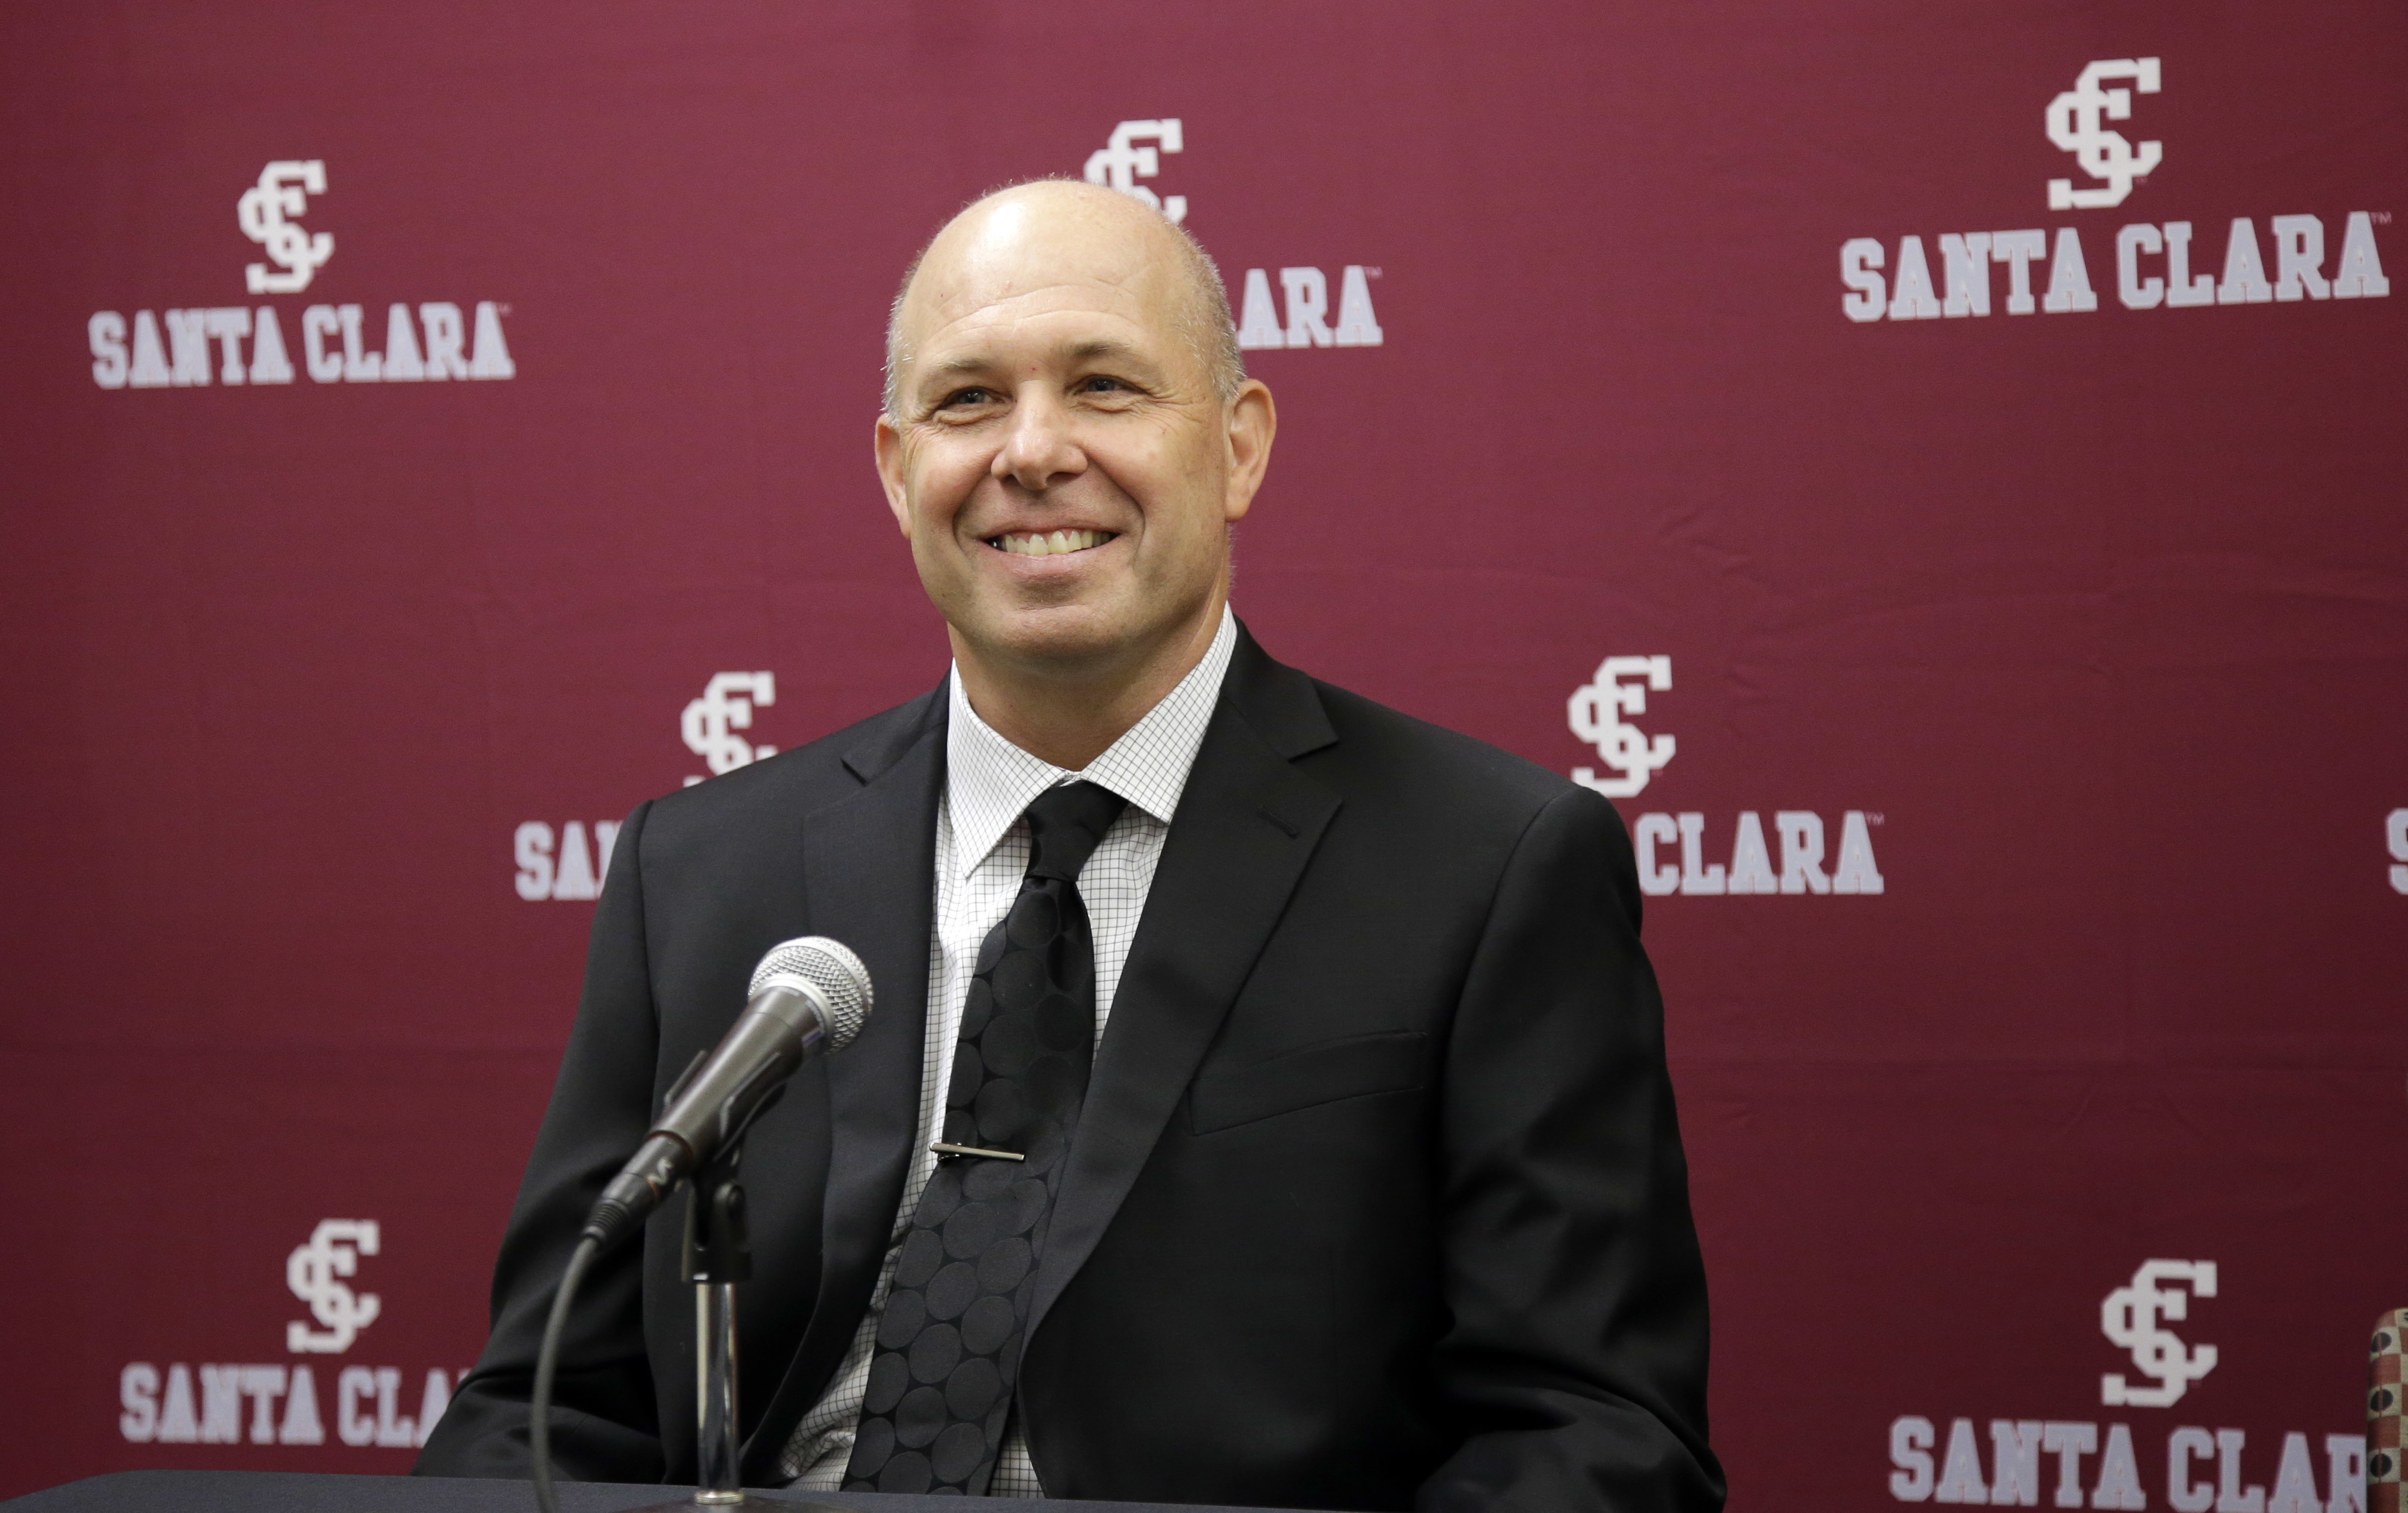 New Santa Clara men's NCAA college basketball coach Herb Sendek smiles as he is introduced at a news conference, Wednesday, March 30, 2016, in Santa Clara, Calif. (AP Photo/Marcio Jose Sanchez)